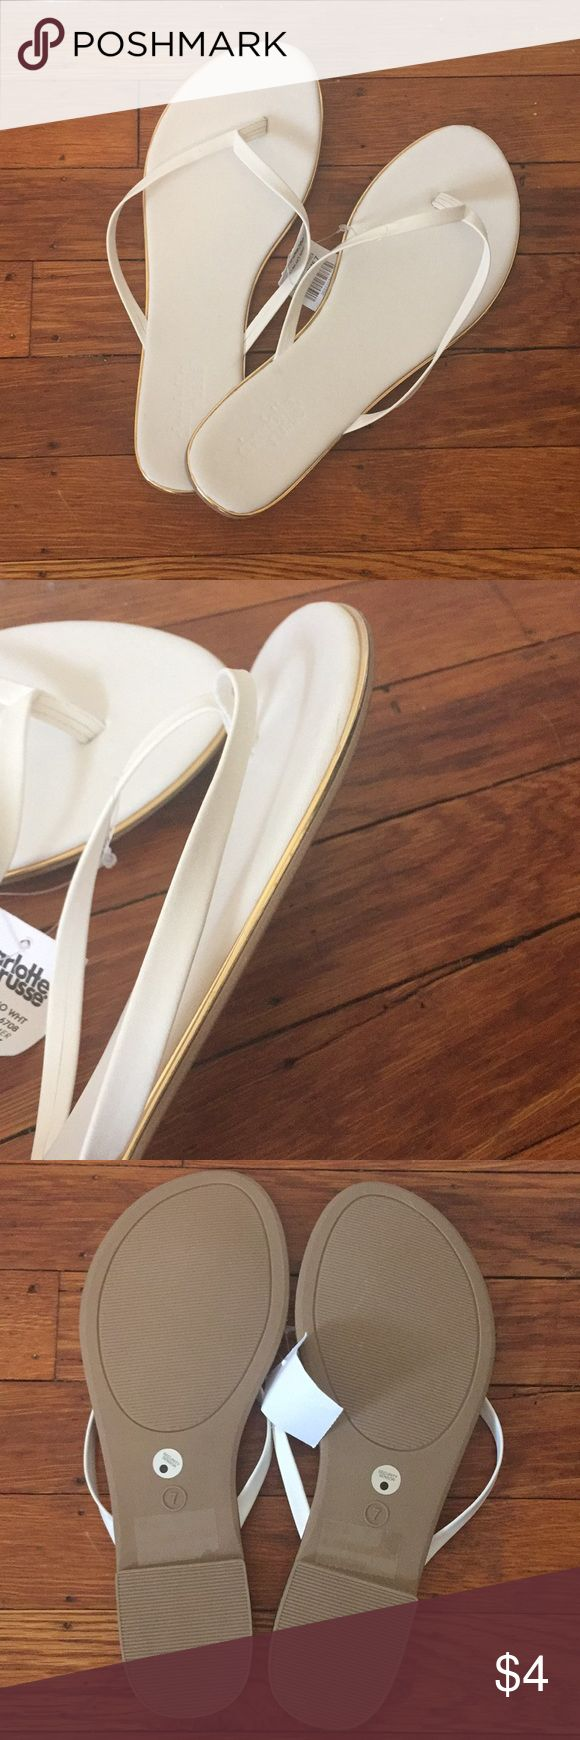 Charolette russe white and gold flip flops Never worn! Still have tags on. Perfect condition. Shoes Sandals